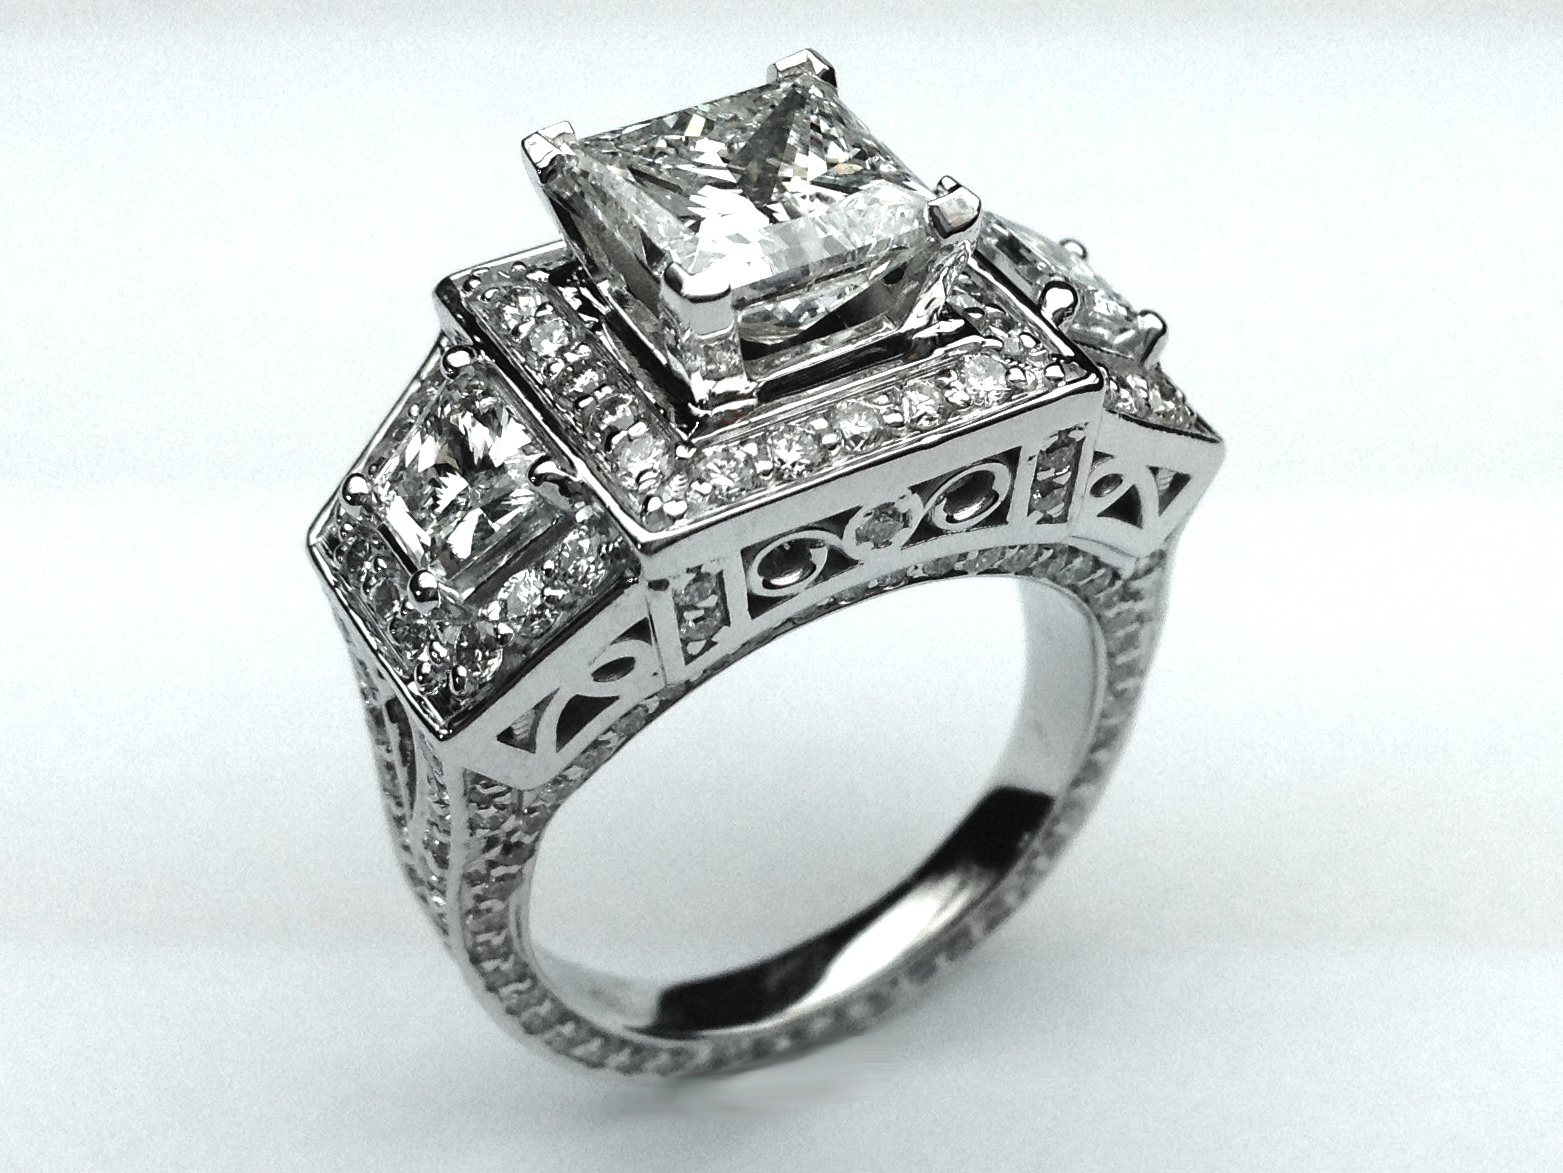 wedding print stl square ring cut cgtrader model models rings jewelry diamond